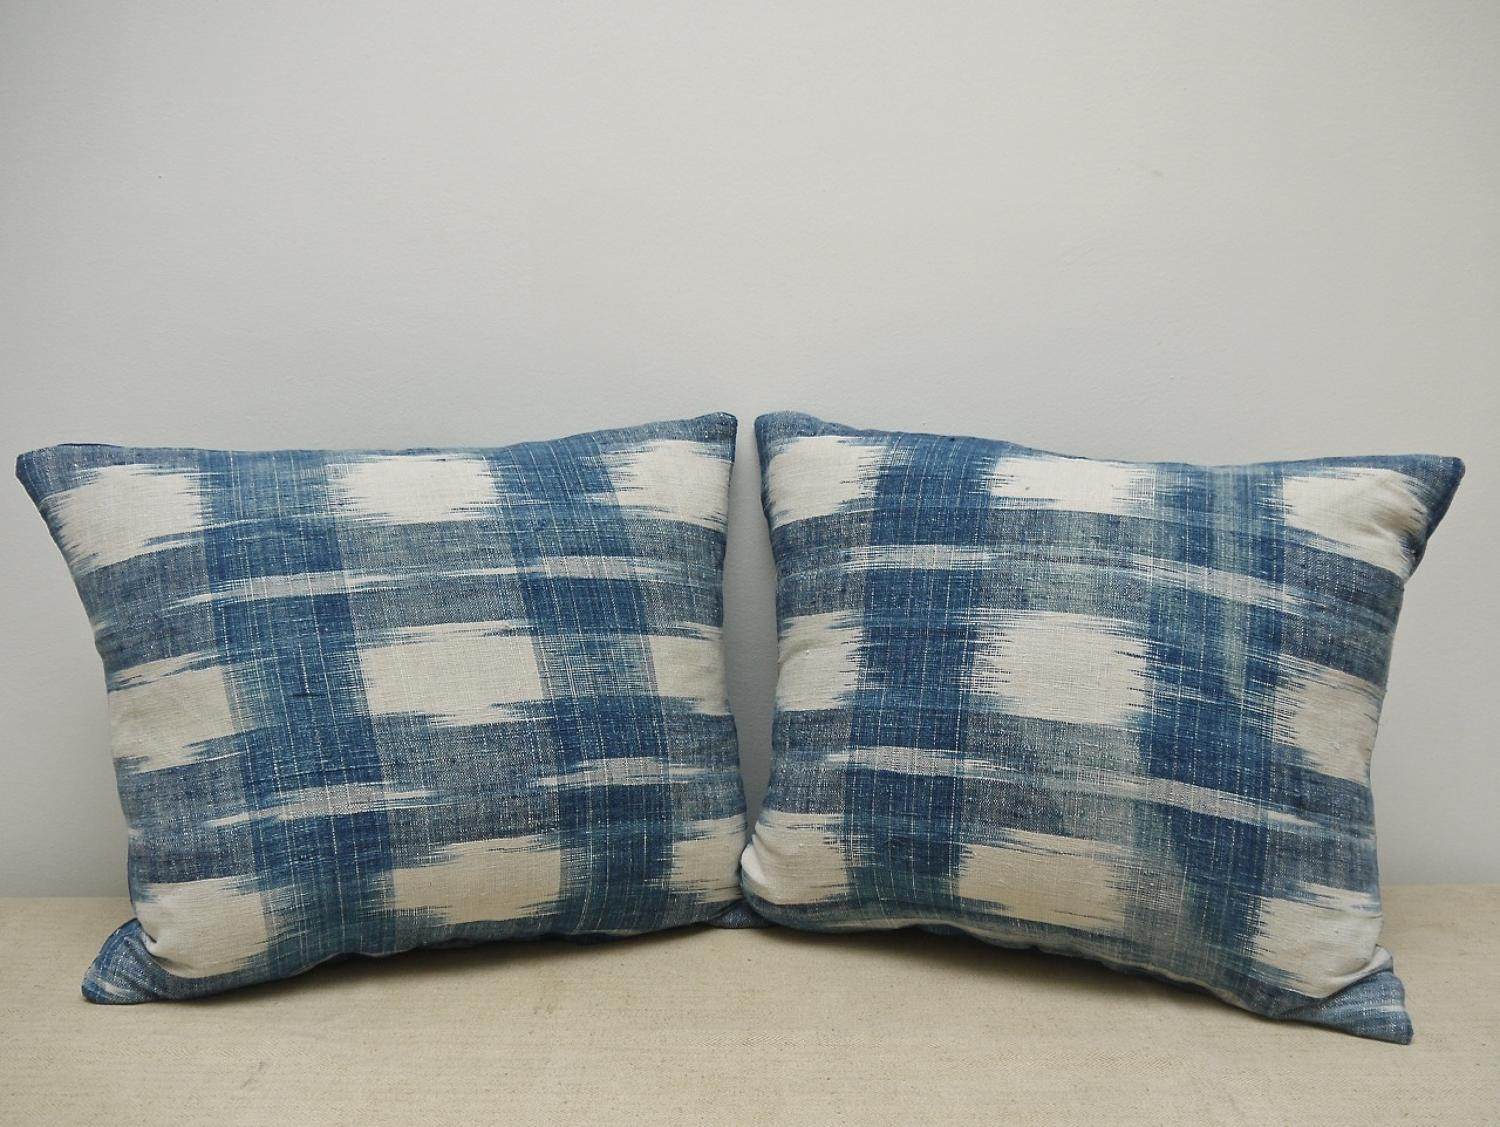 Pair of 18th century French indigo flamme cushions